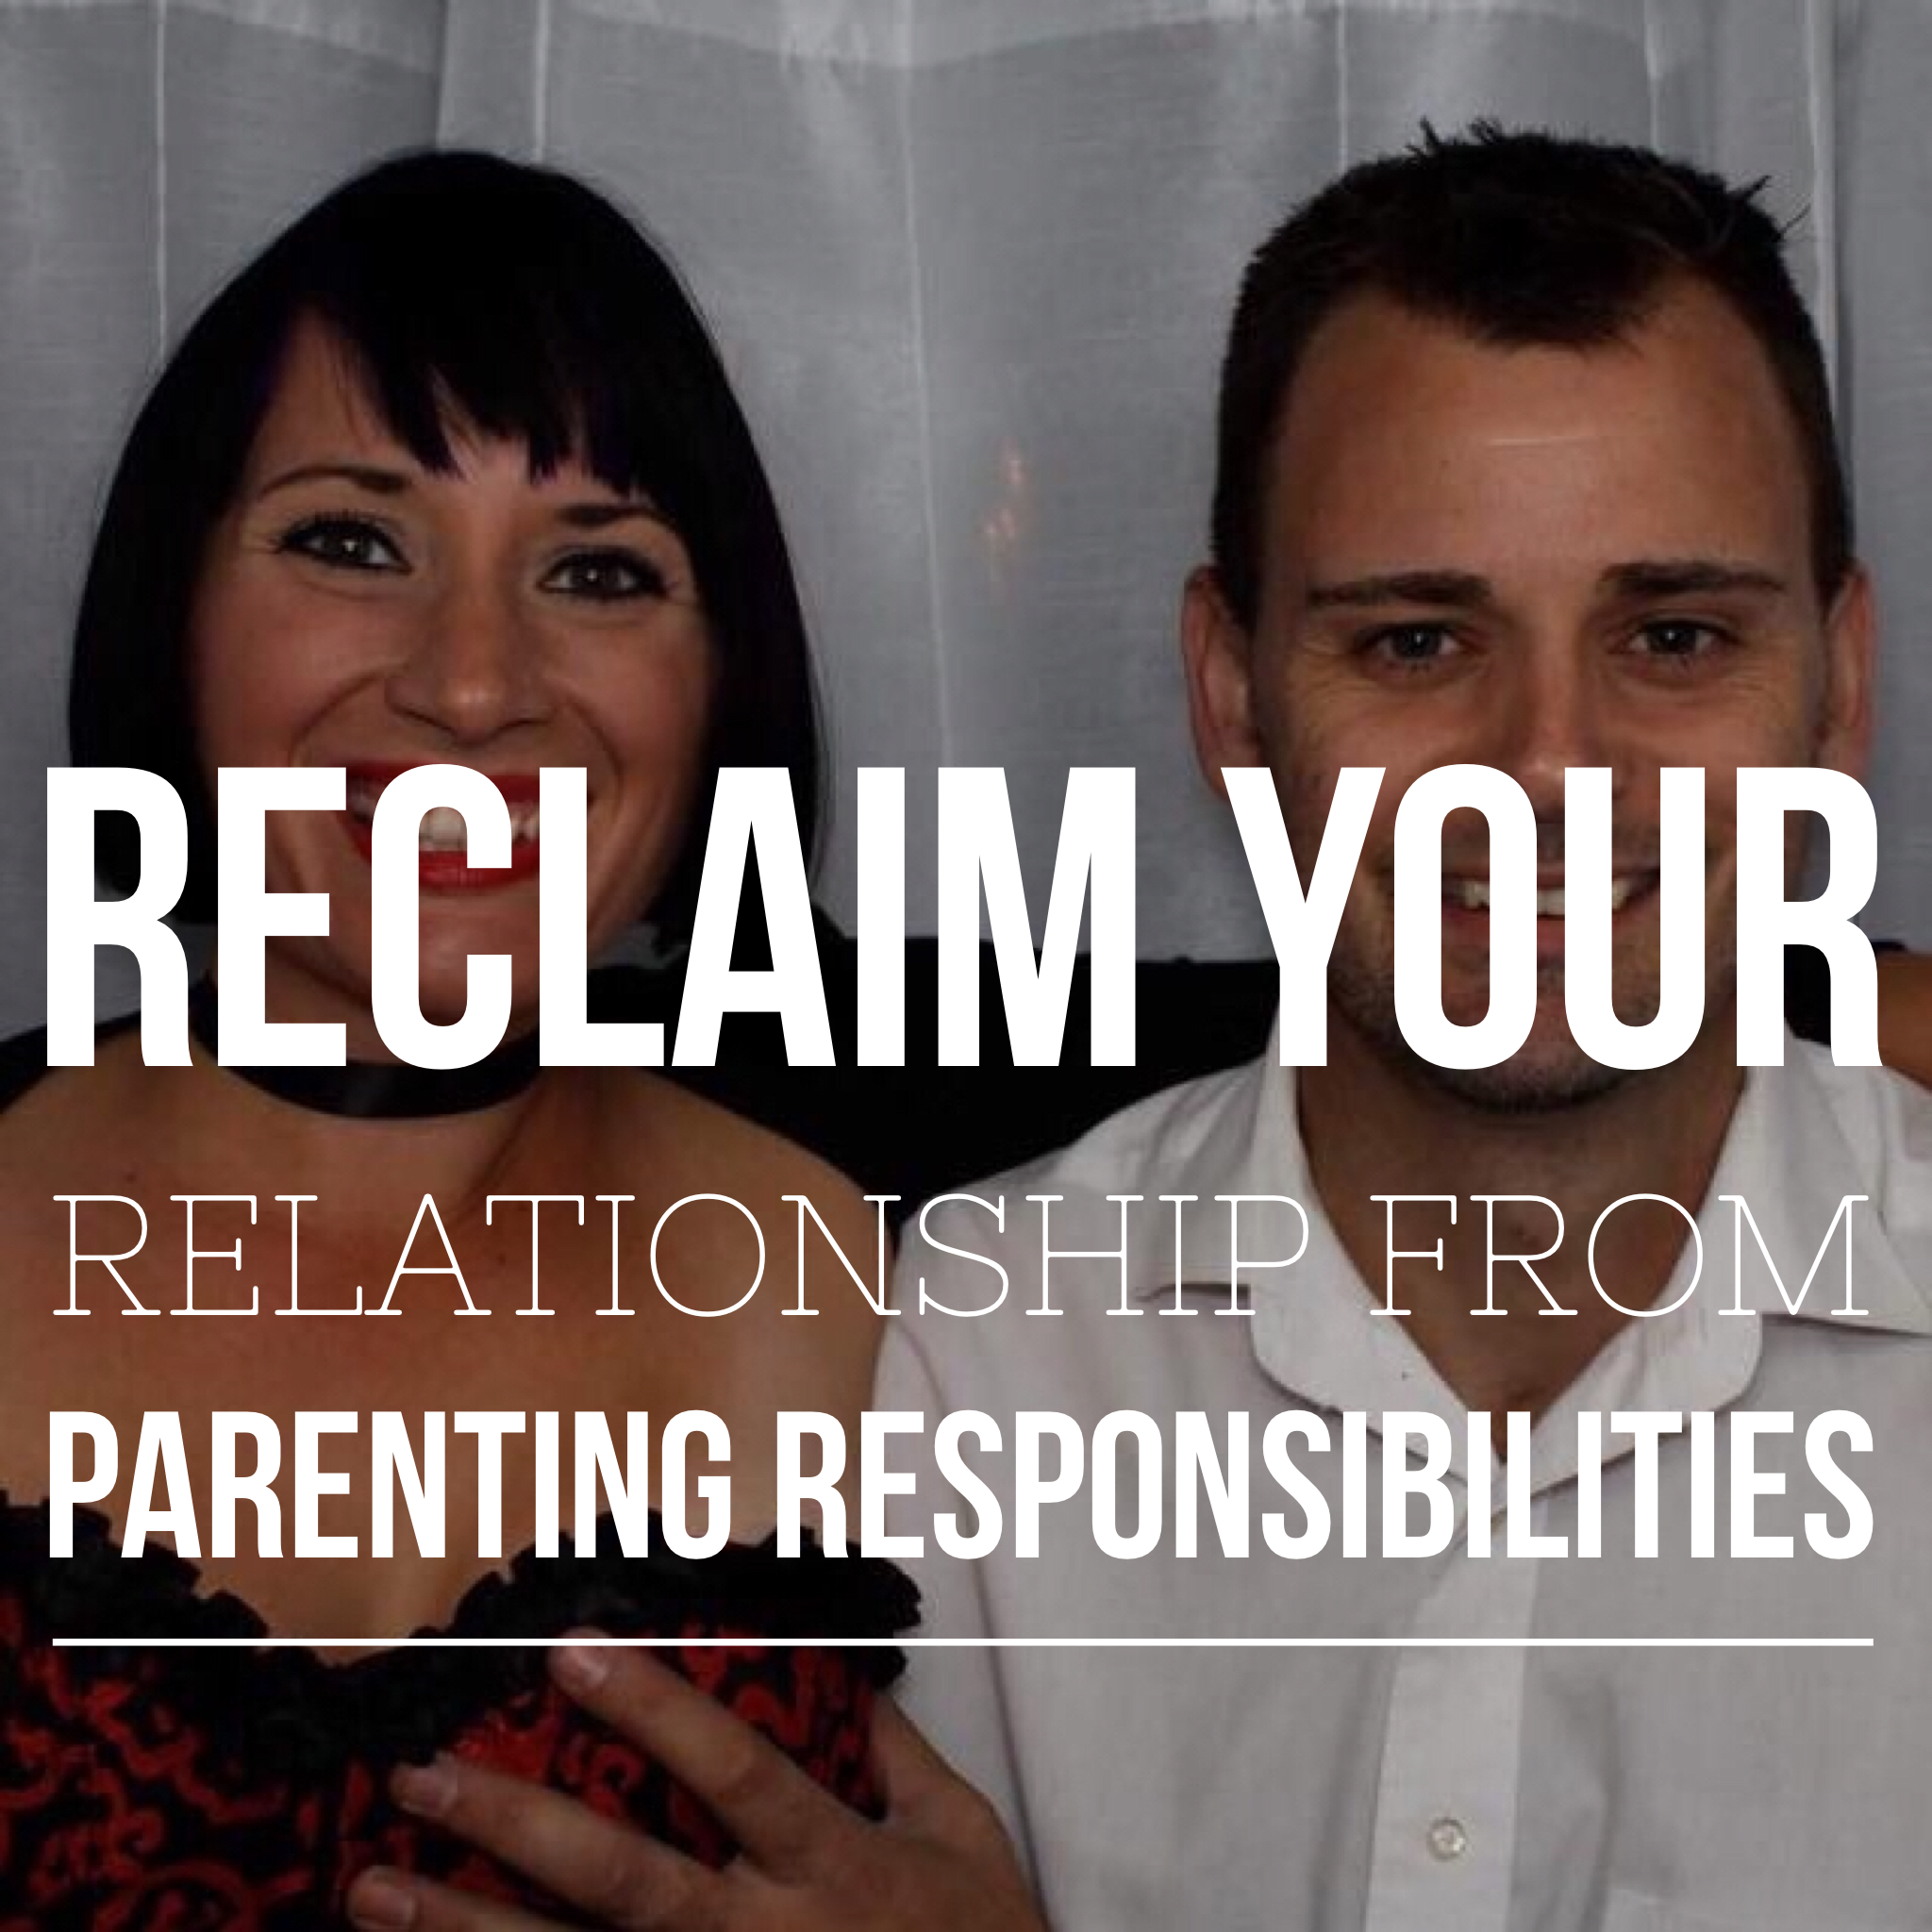 Reclaim Your Relationship Fro Parenting Responsibilities podcast art.PNG